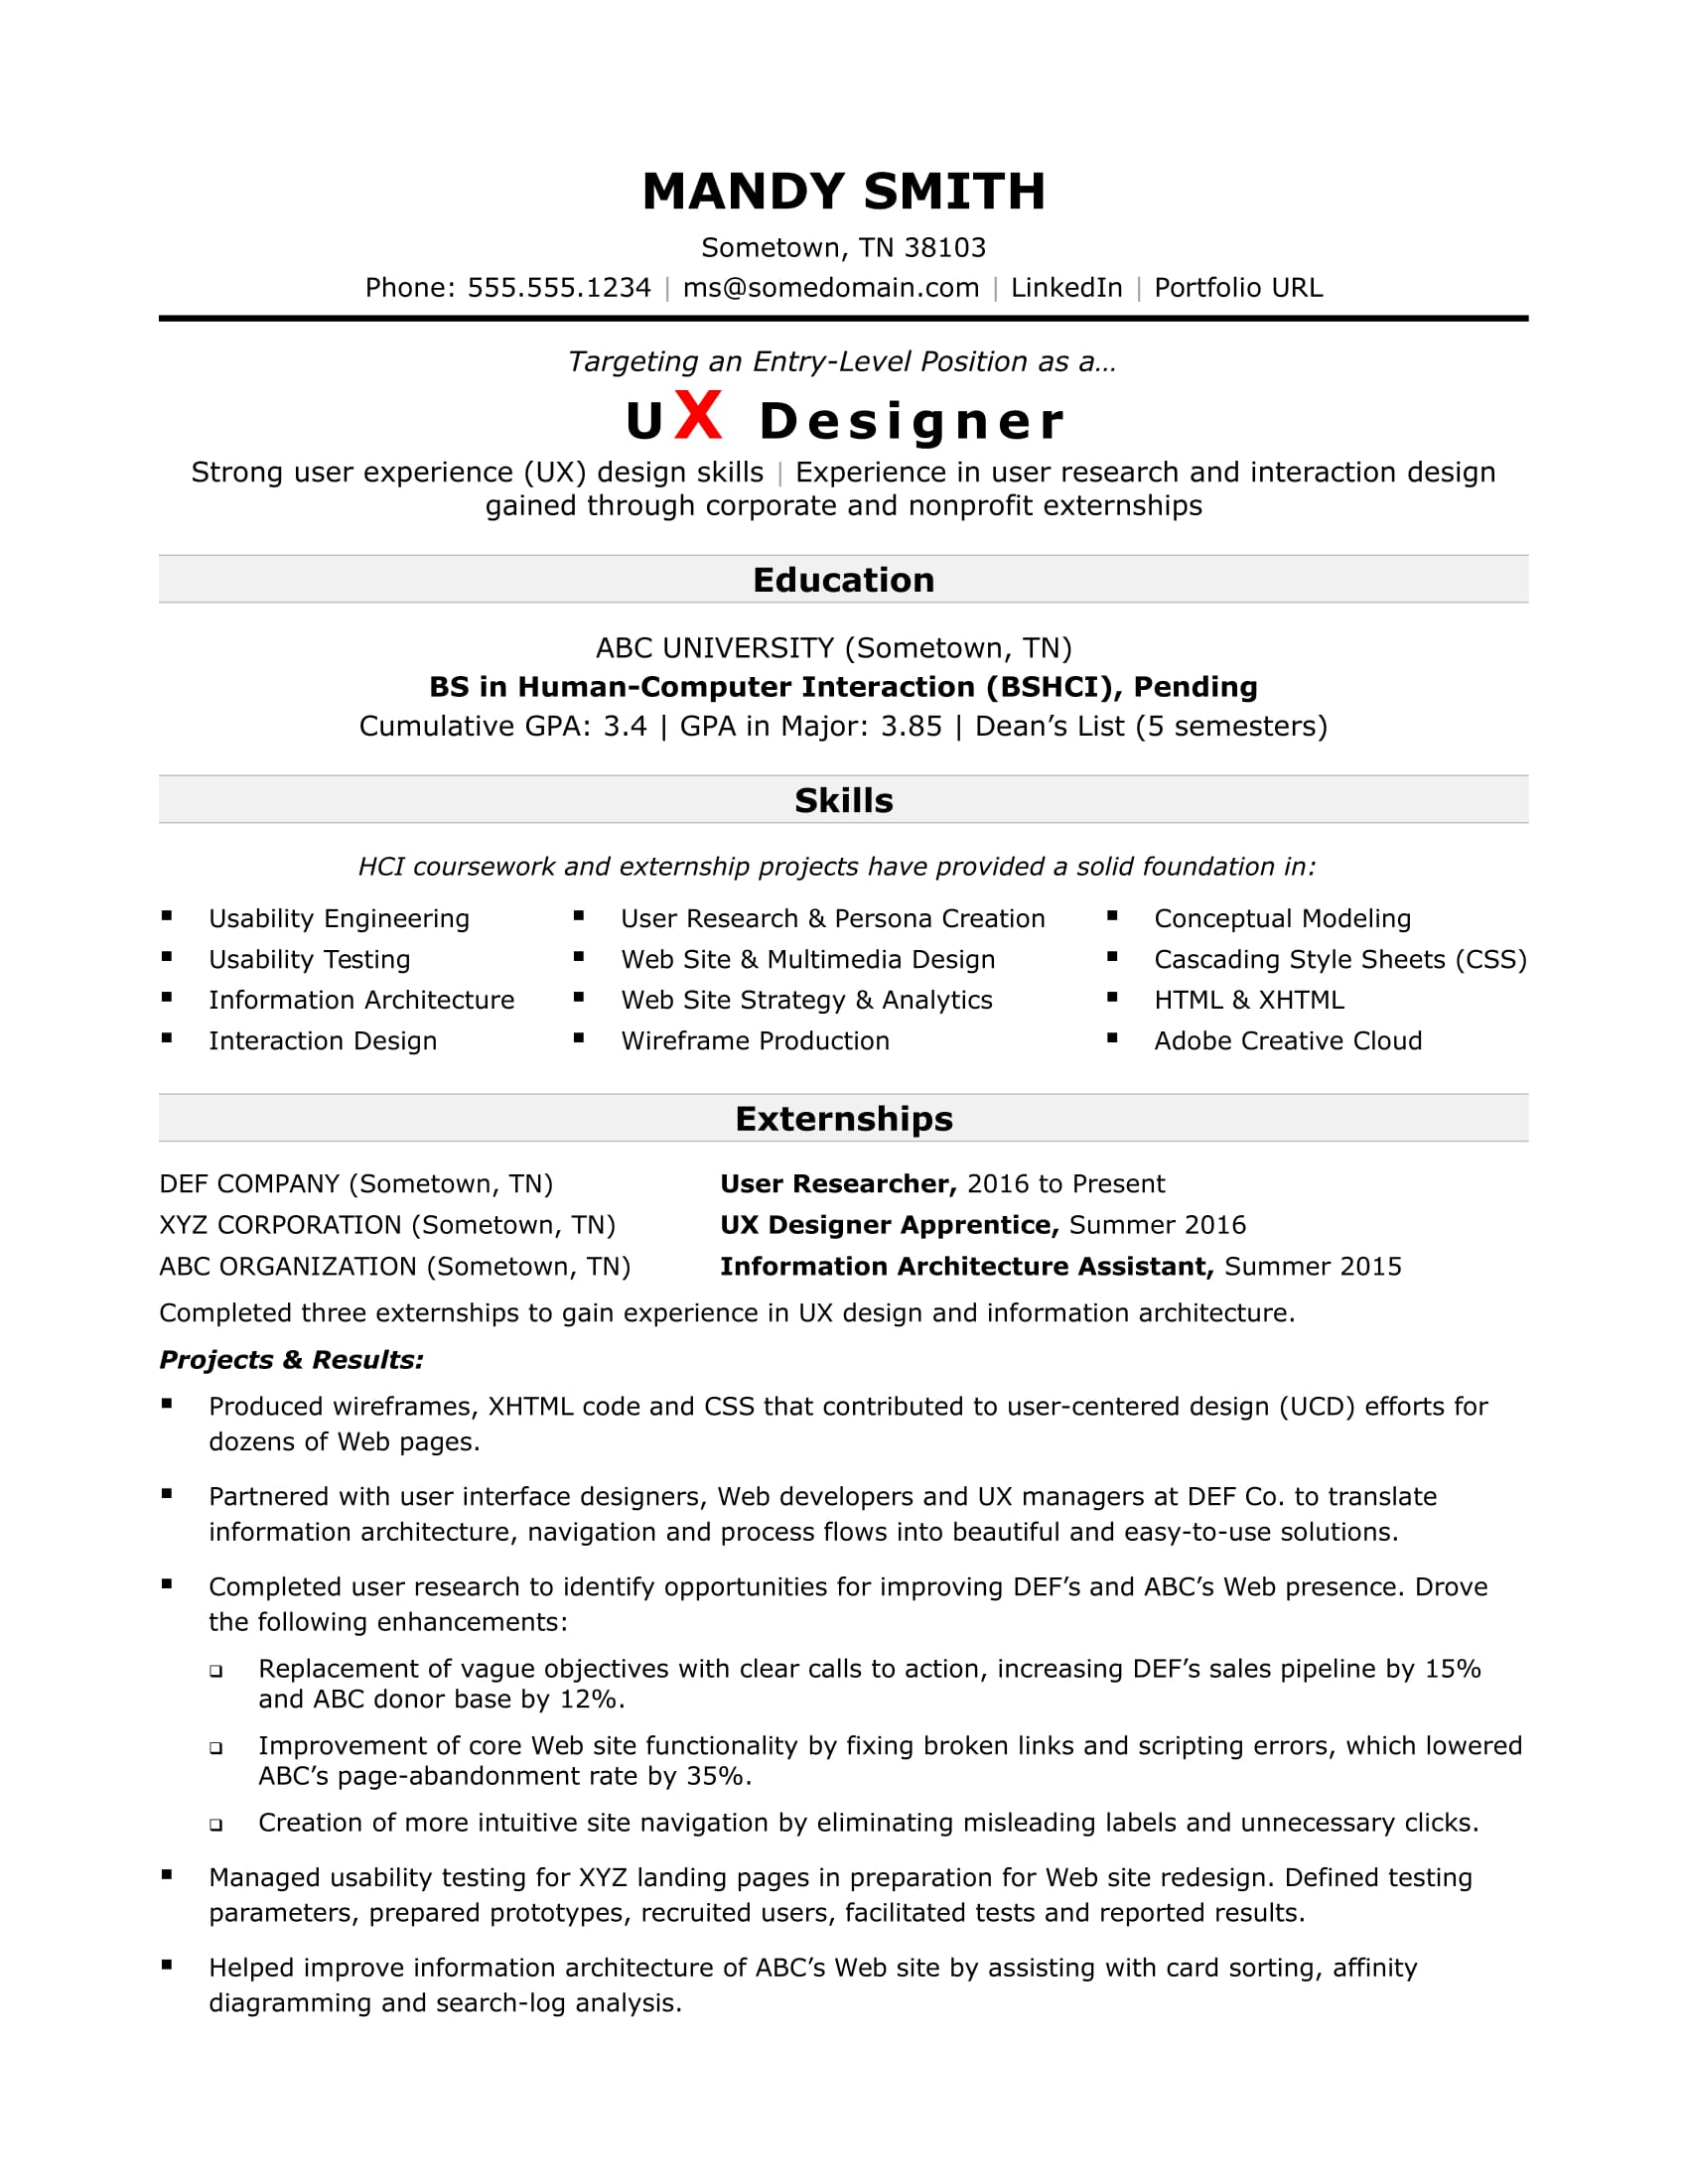 Sample Resume For An Entry-Level Ux Designer | Monster.Com